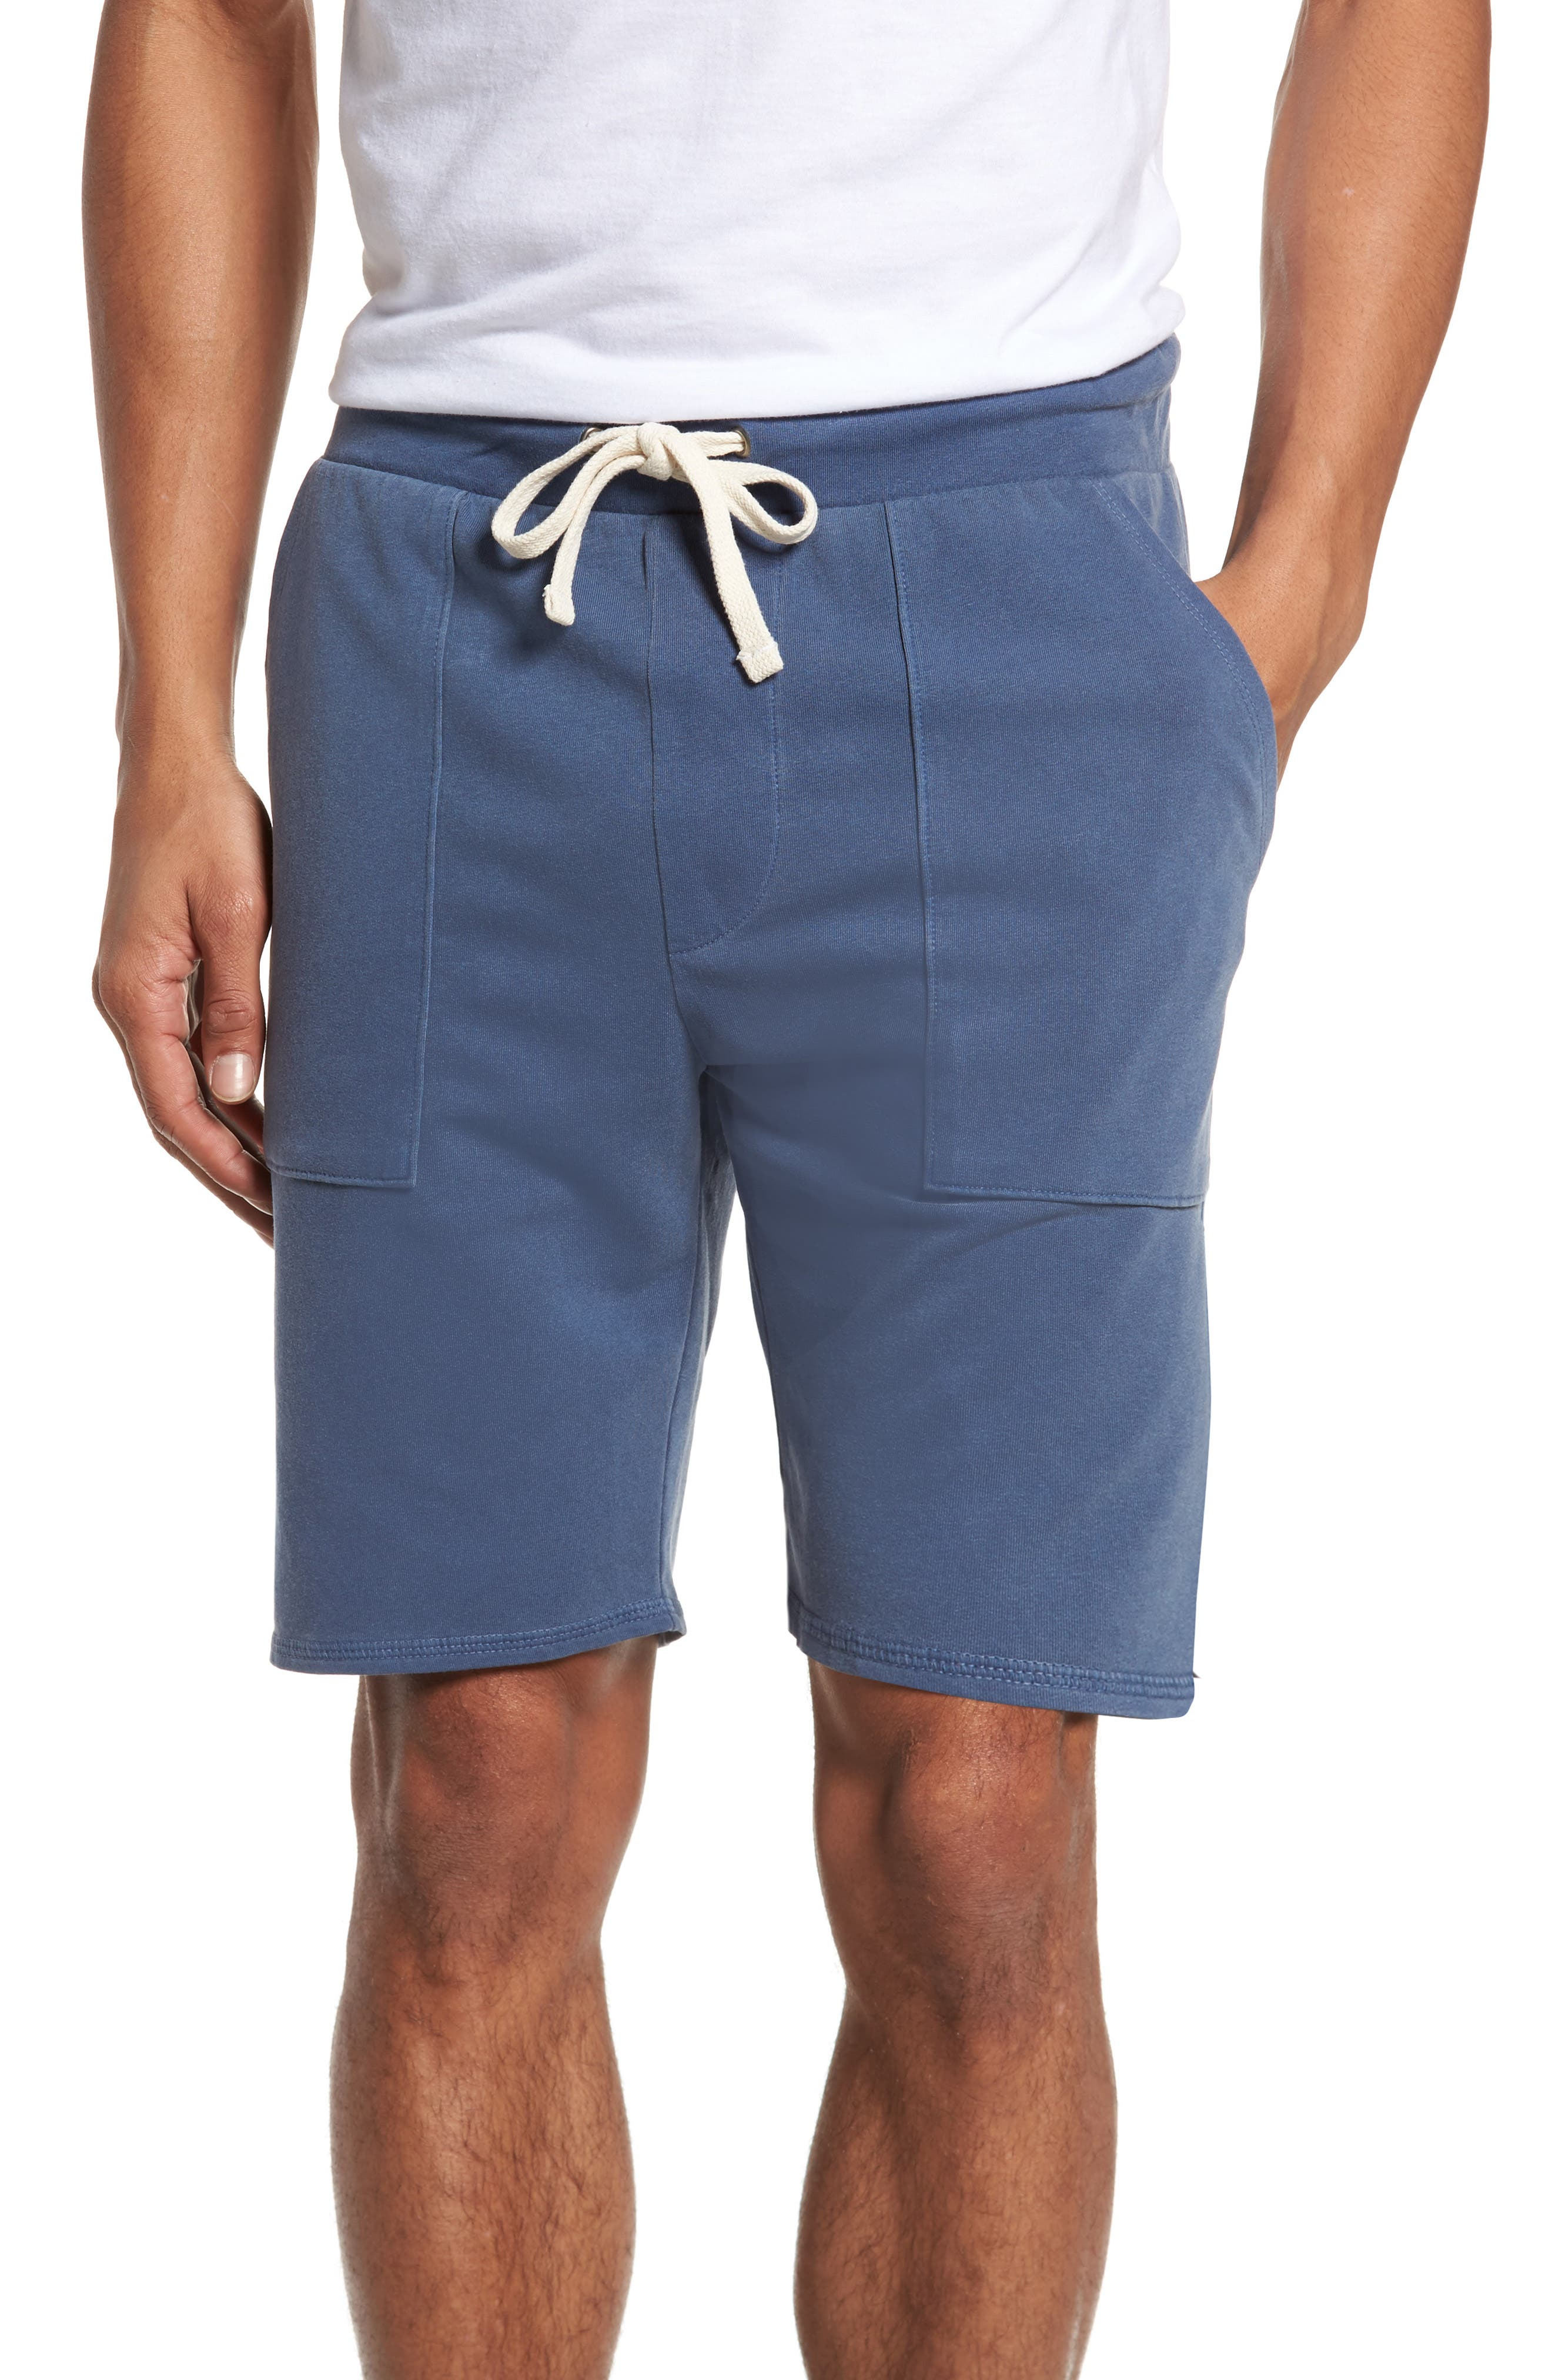 Terrycloth Scallop Shorts,                         Main,                         color, Faded Navy